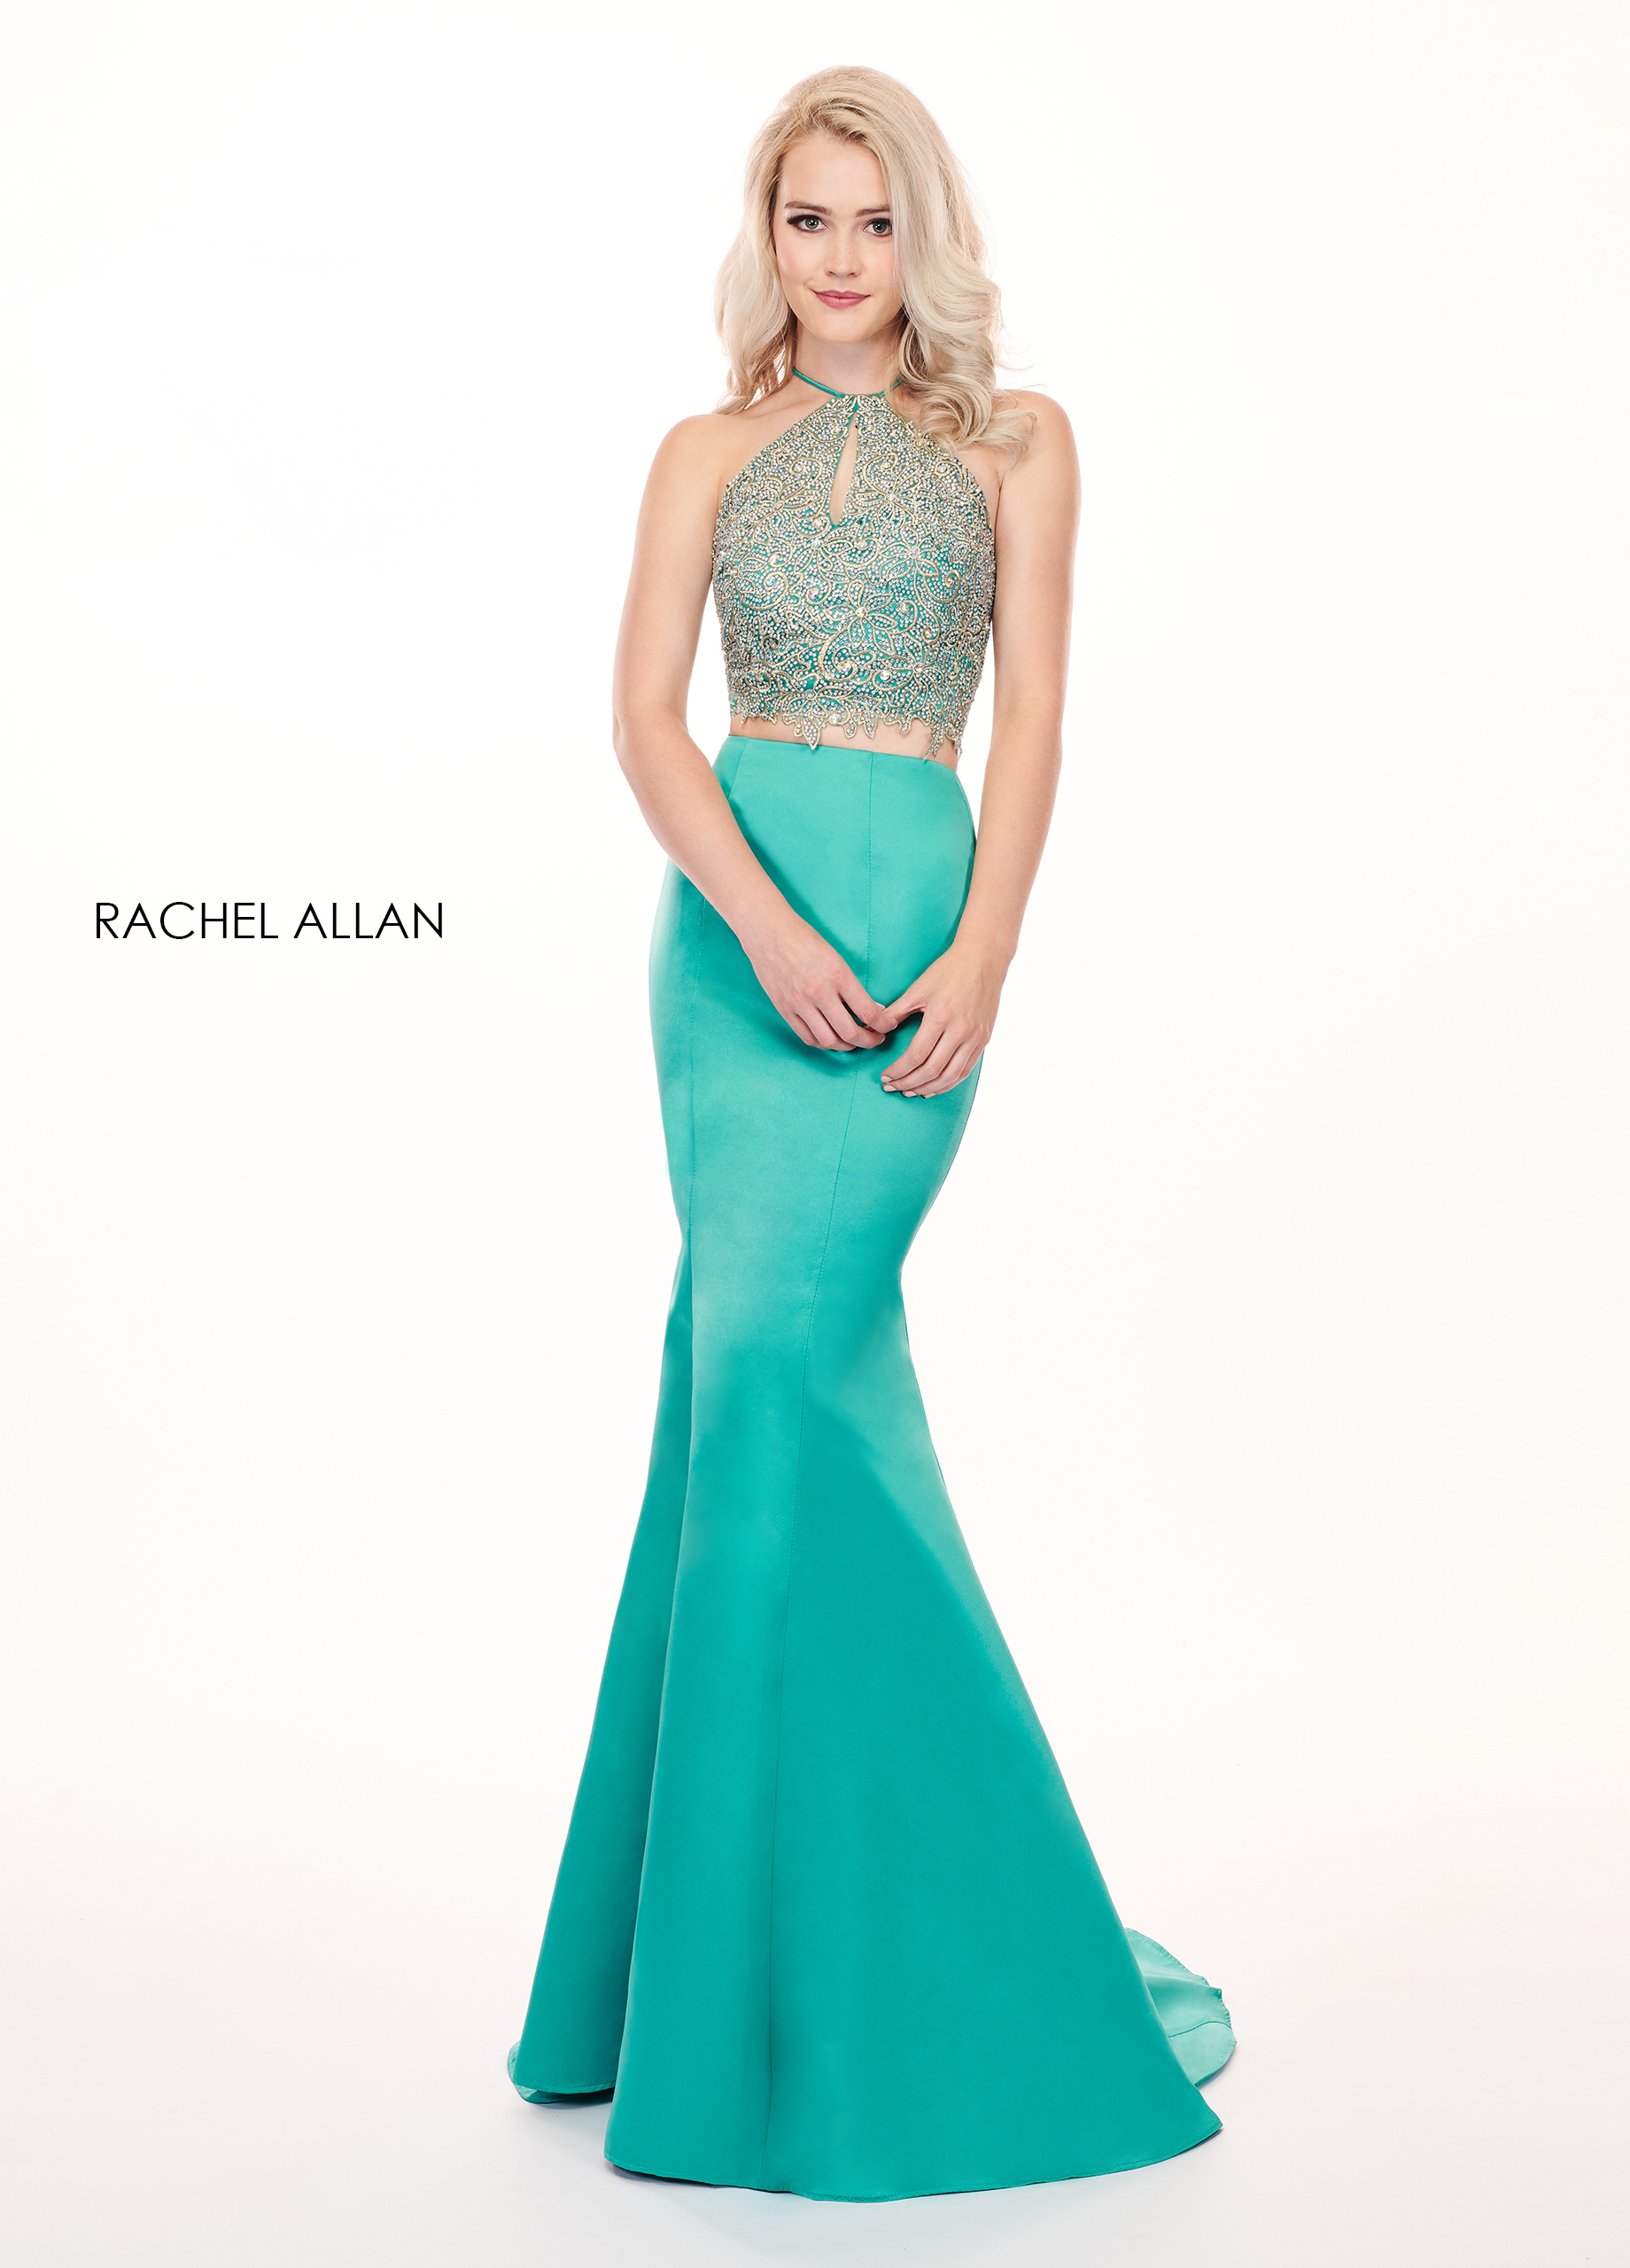 Halter Fit & Flare Prom Dresses in Green Color